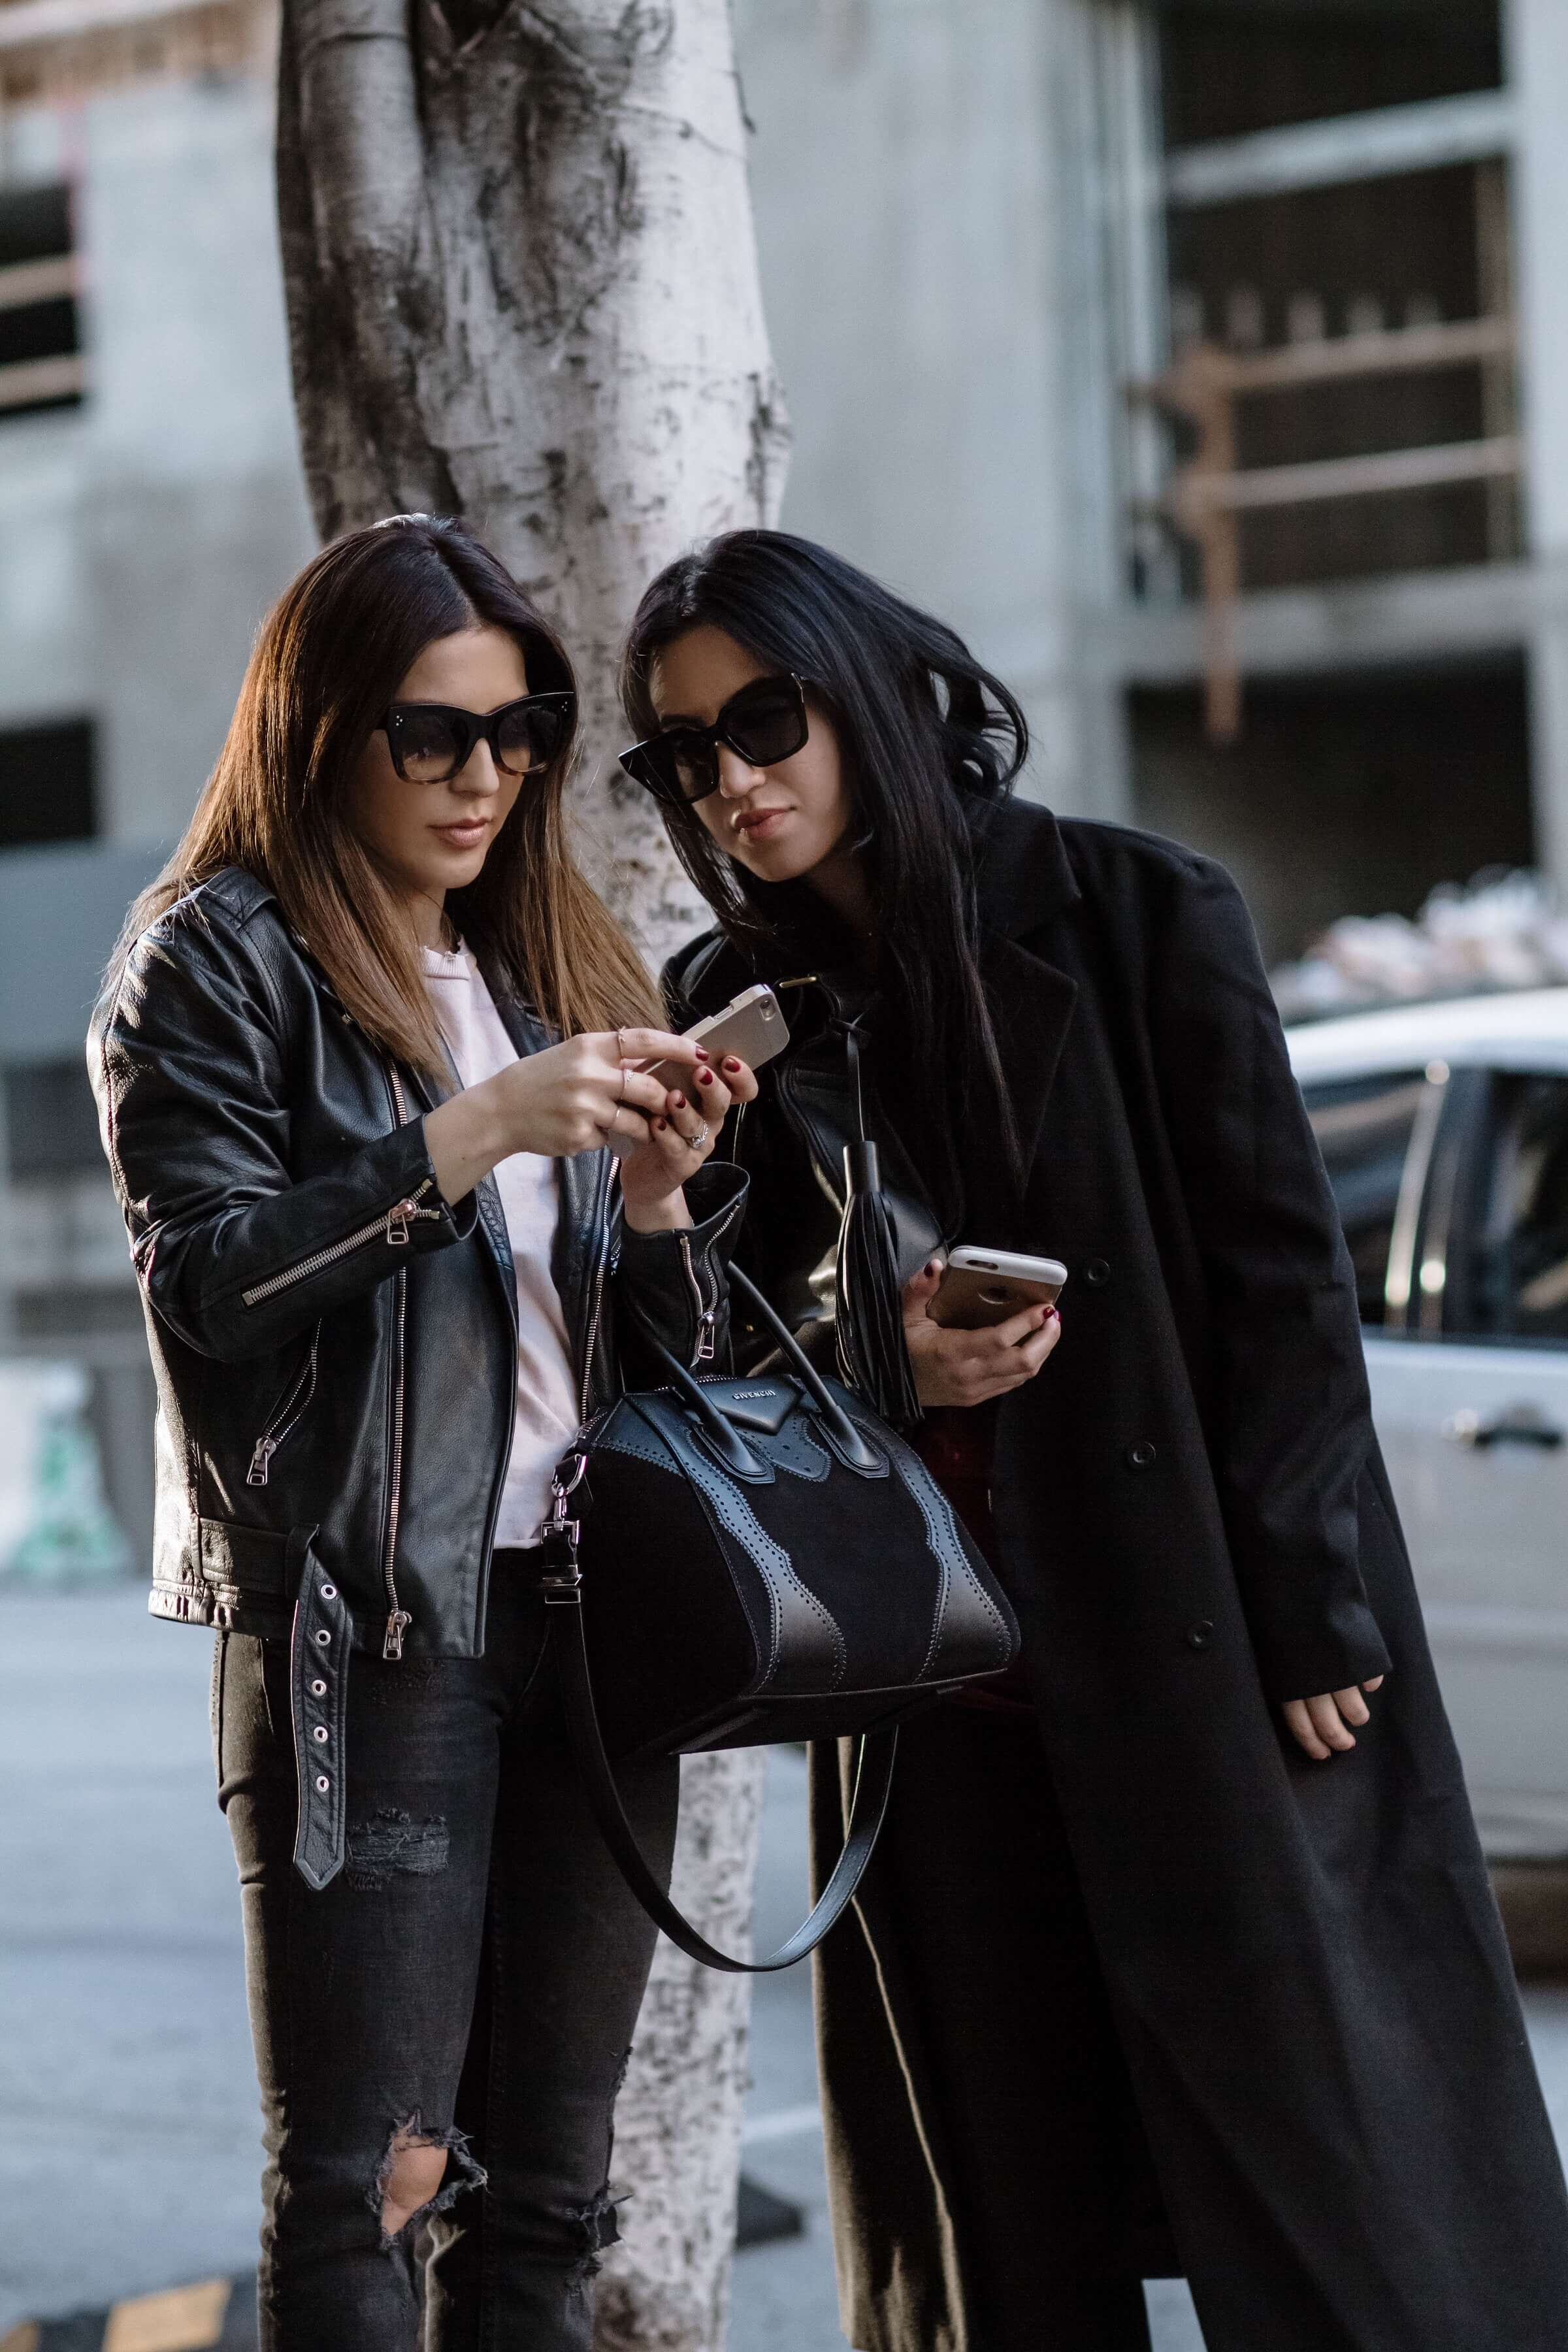 stylish coffee date with sona gasparian and tania sarin